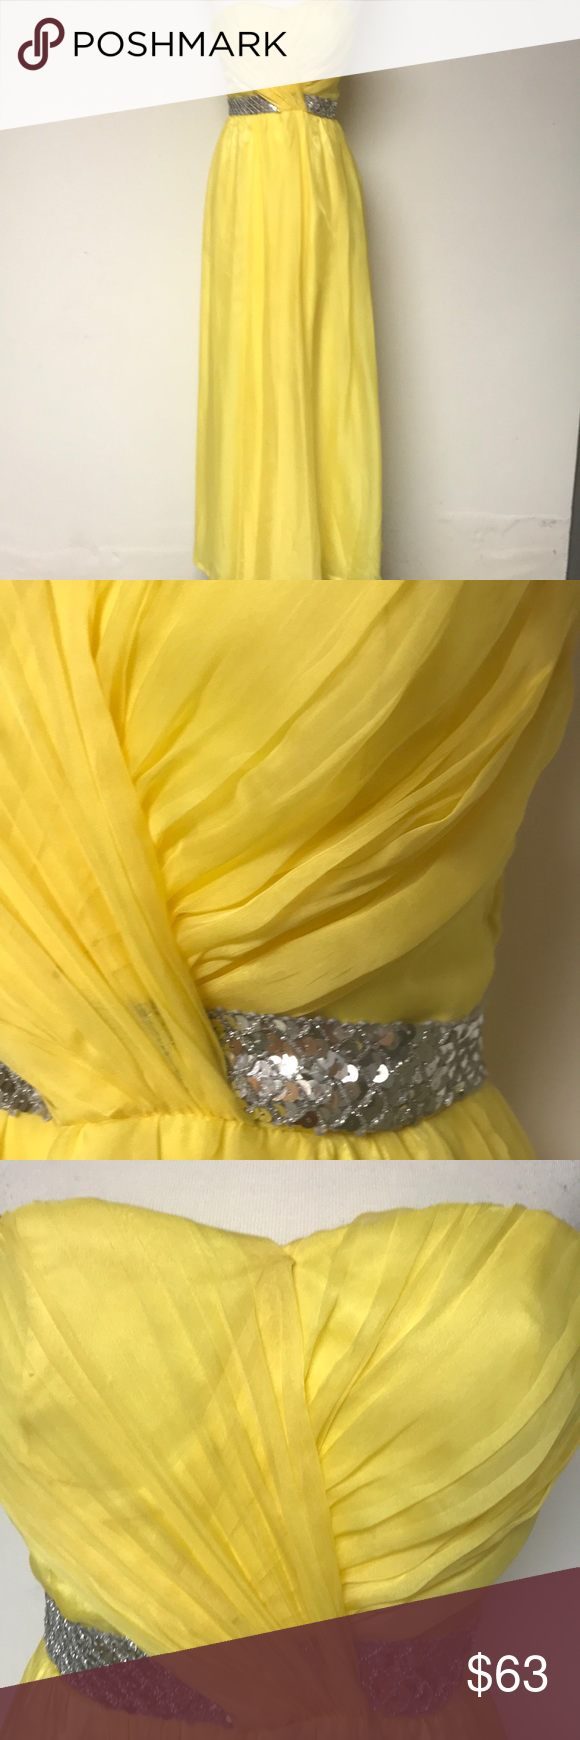 Yellow formal dress be the ucbelleud of the ball in this classic